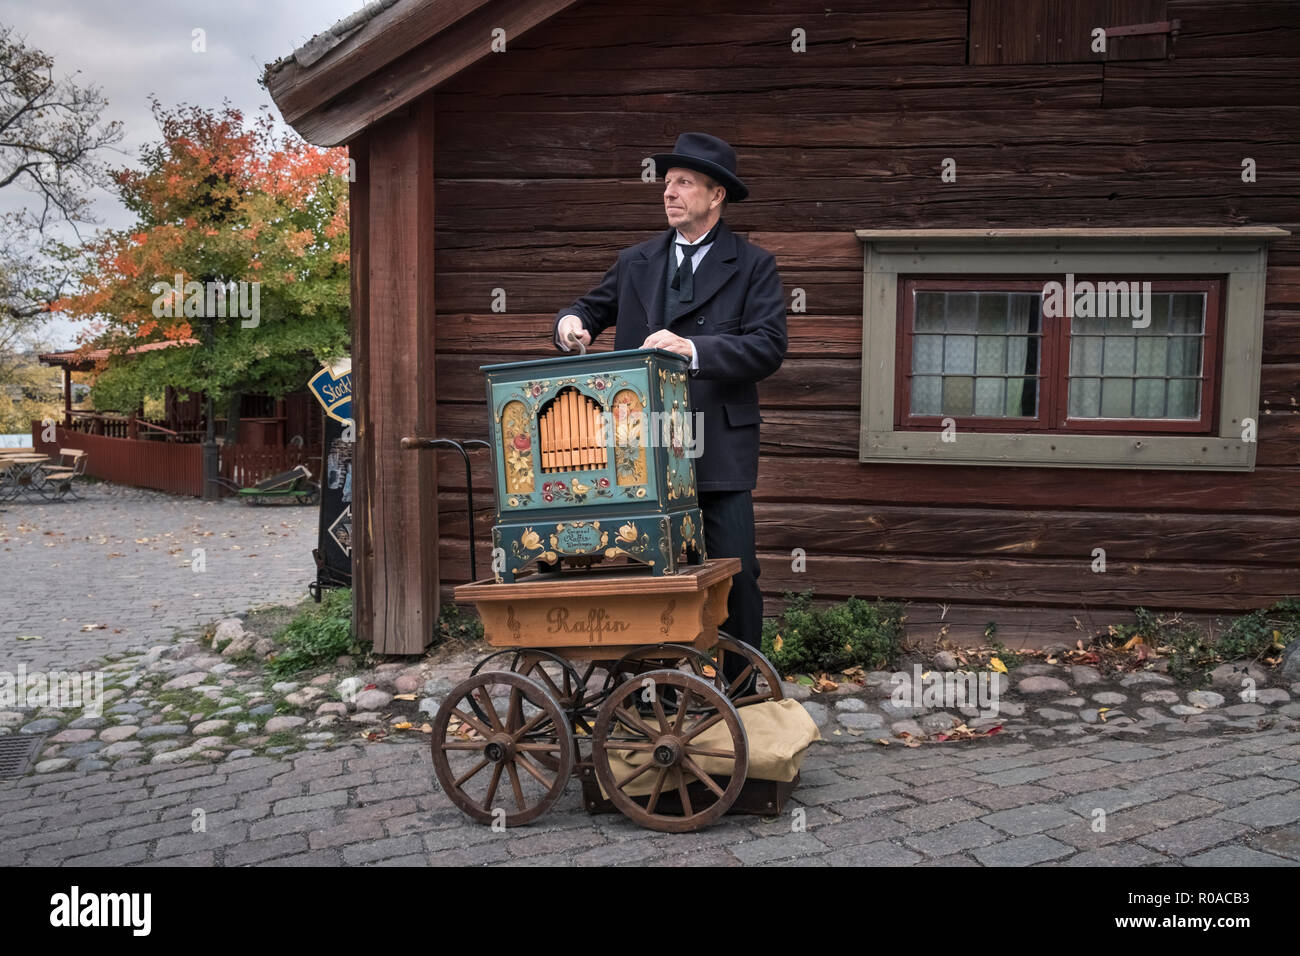 Skansen open air museum, Djurgarden, Sweden. Re-enactor plays a Raffin organ illustrating pre industrial life in early towns and villages. - Stock Image